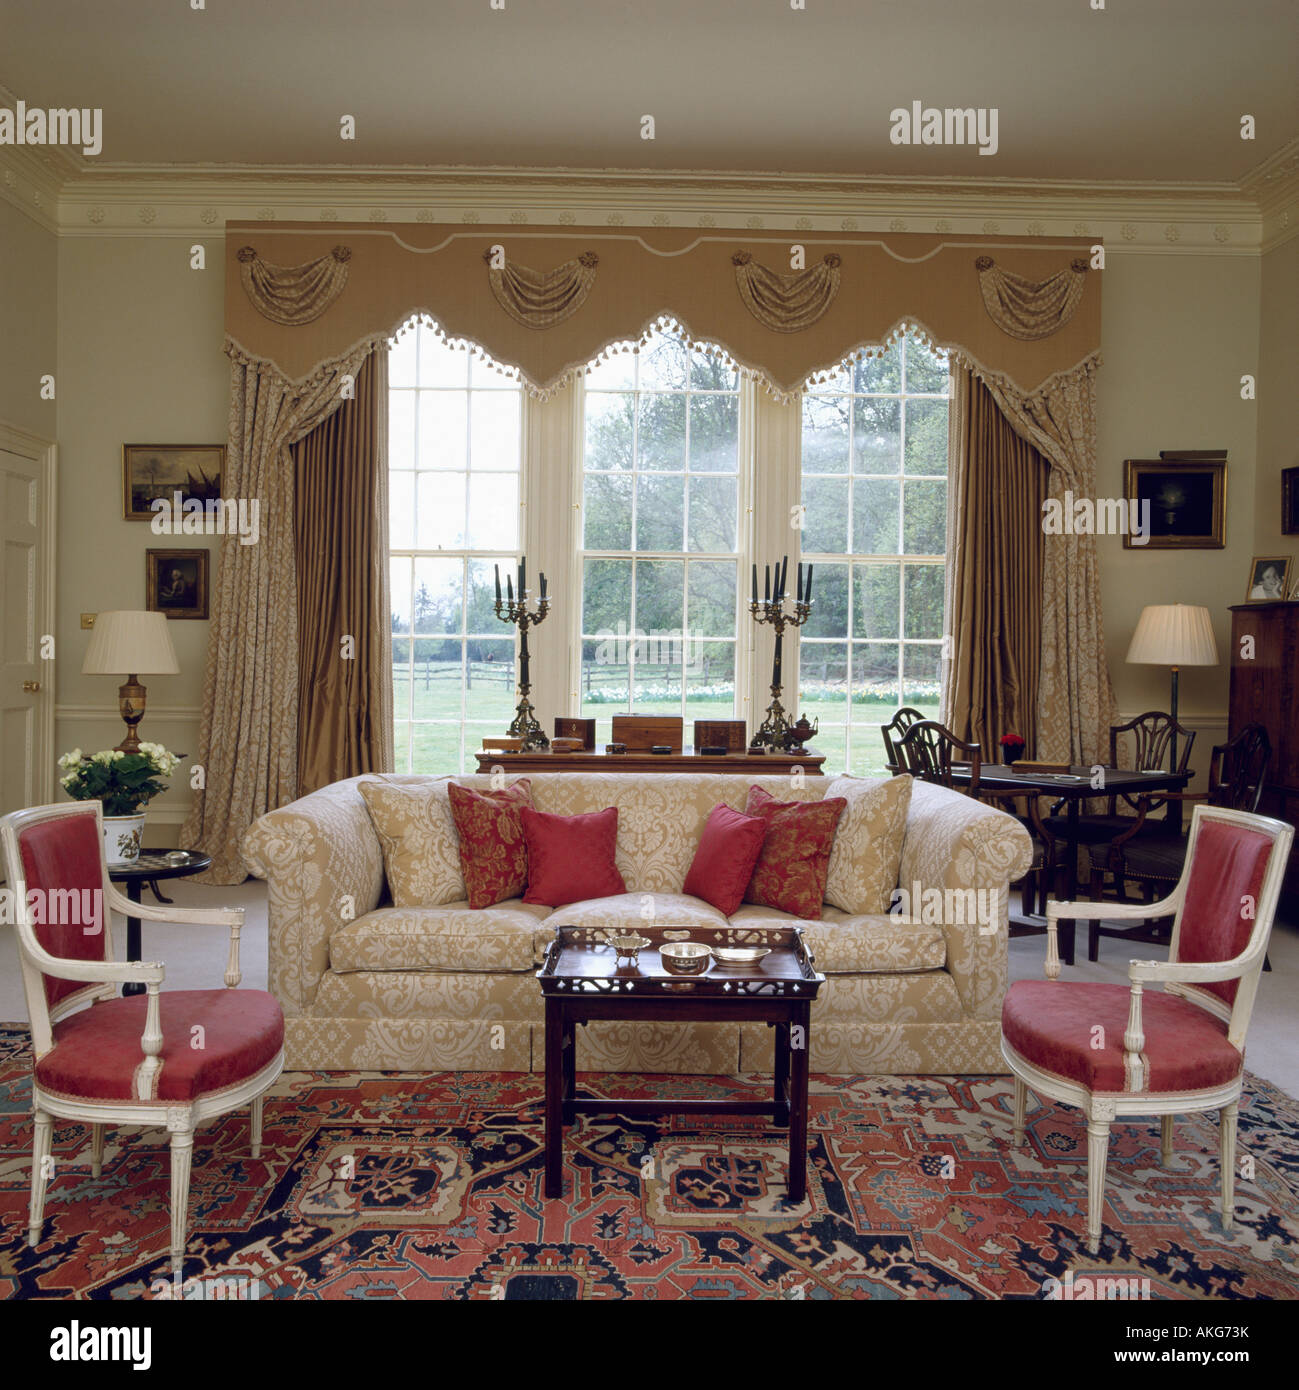 Patterned Curtains Living Room Cream Sofa In Front Of Window With Ornate Pelmet And Cream